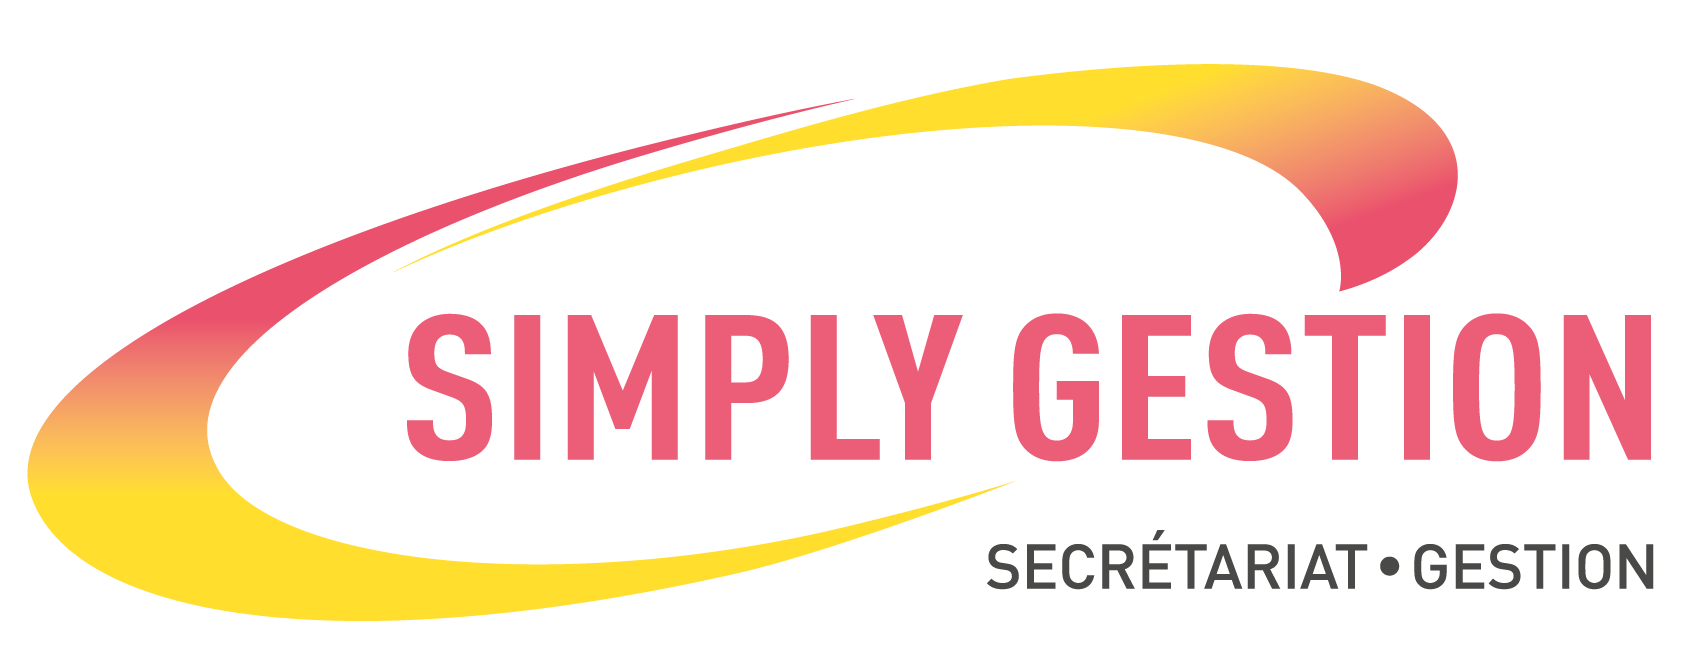 logo grand simply gestion